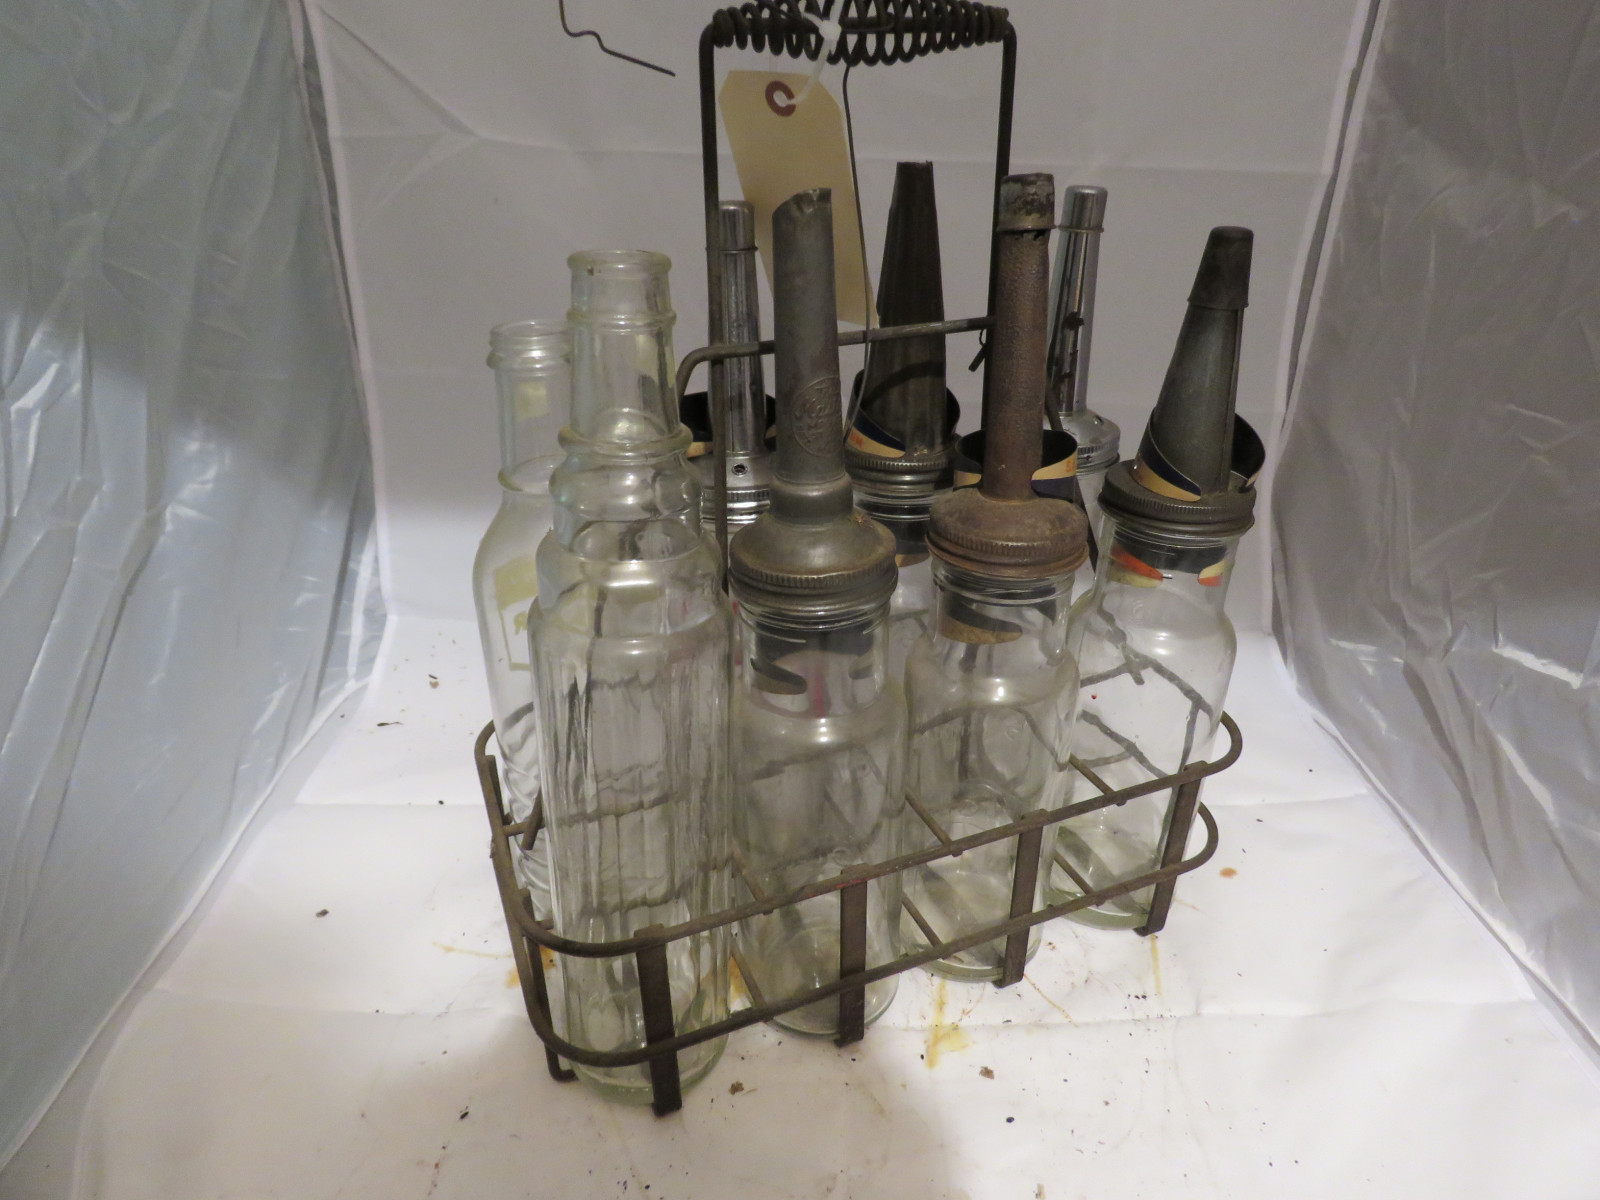 Mixed Glass Oil Bottles and Rack - Image 3